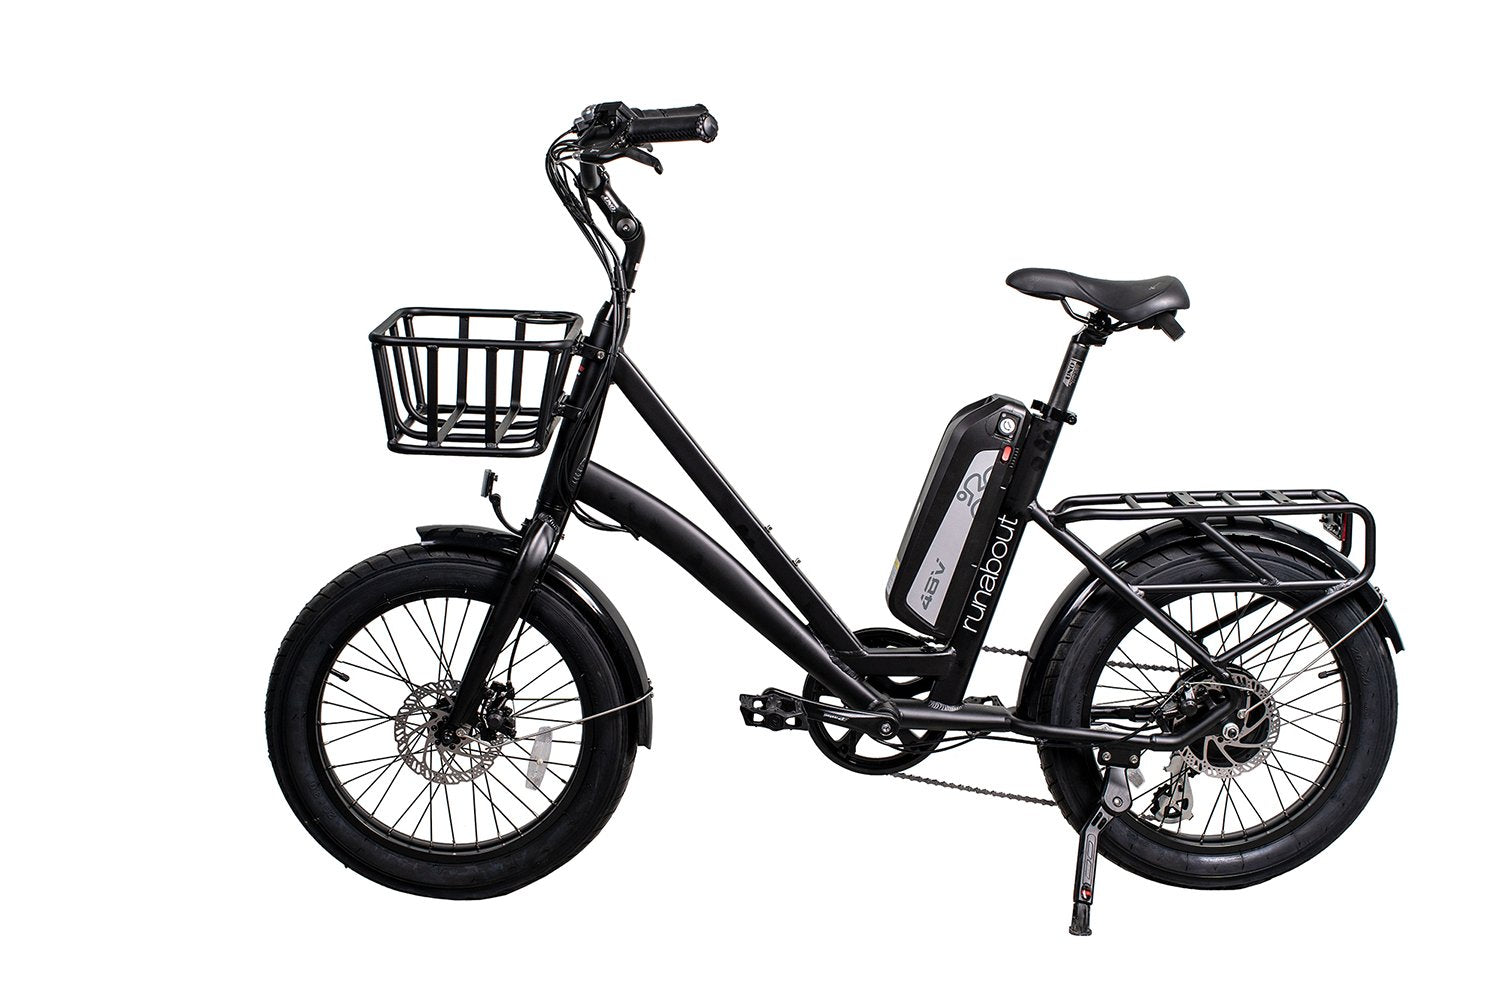 CIVI BIKES RUNABOUT CARGO Electric Bicycle 2020